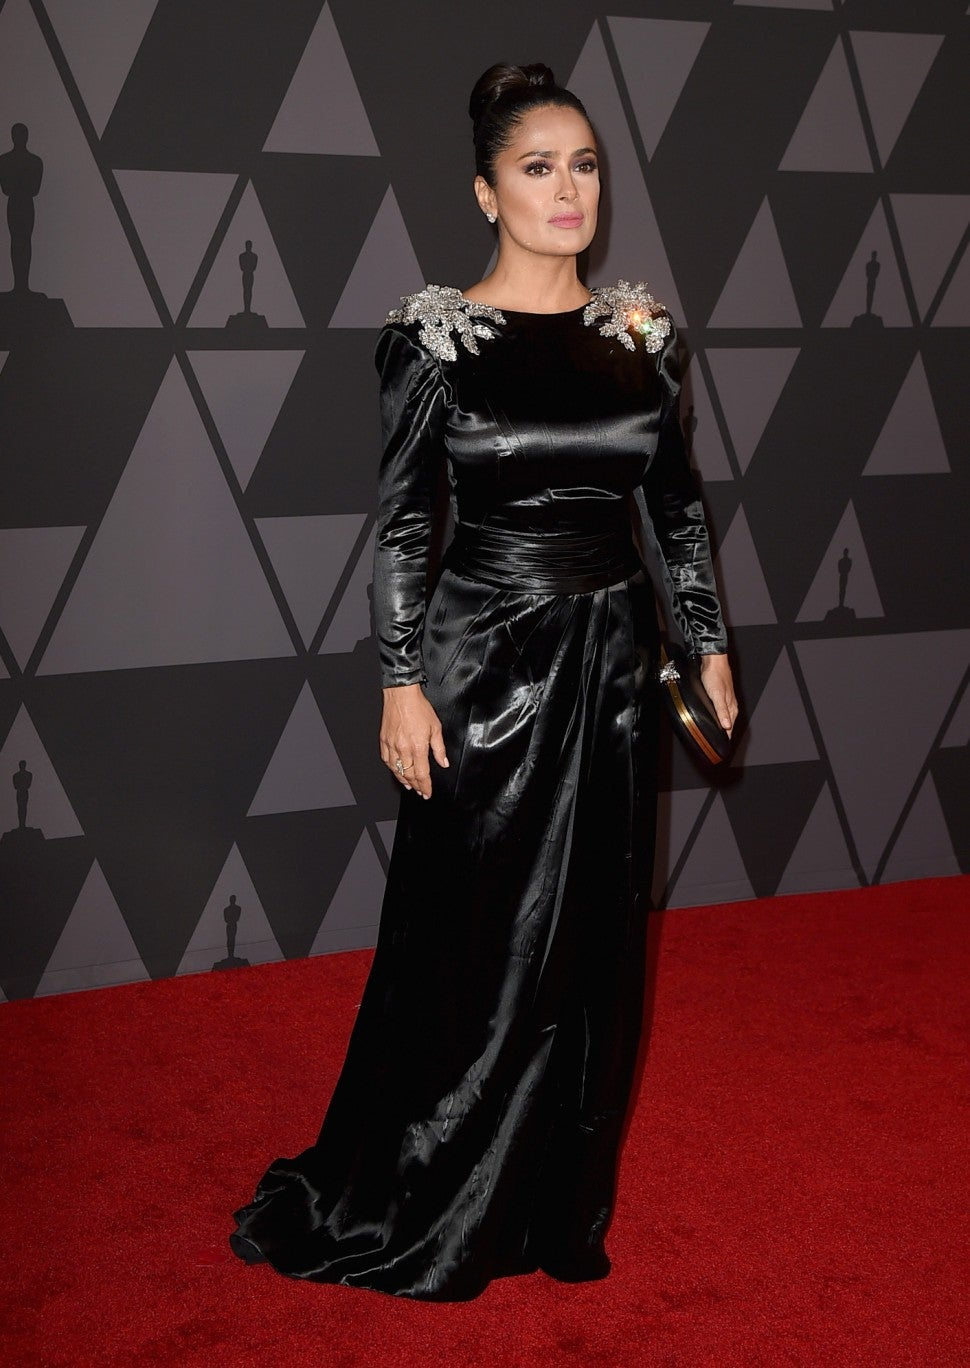 Salma Hayek Governors Awards